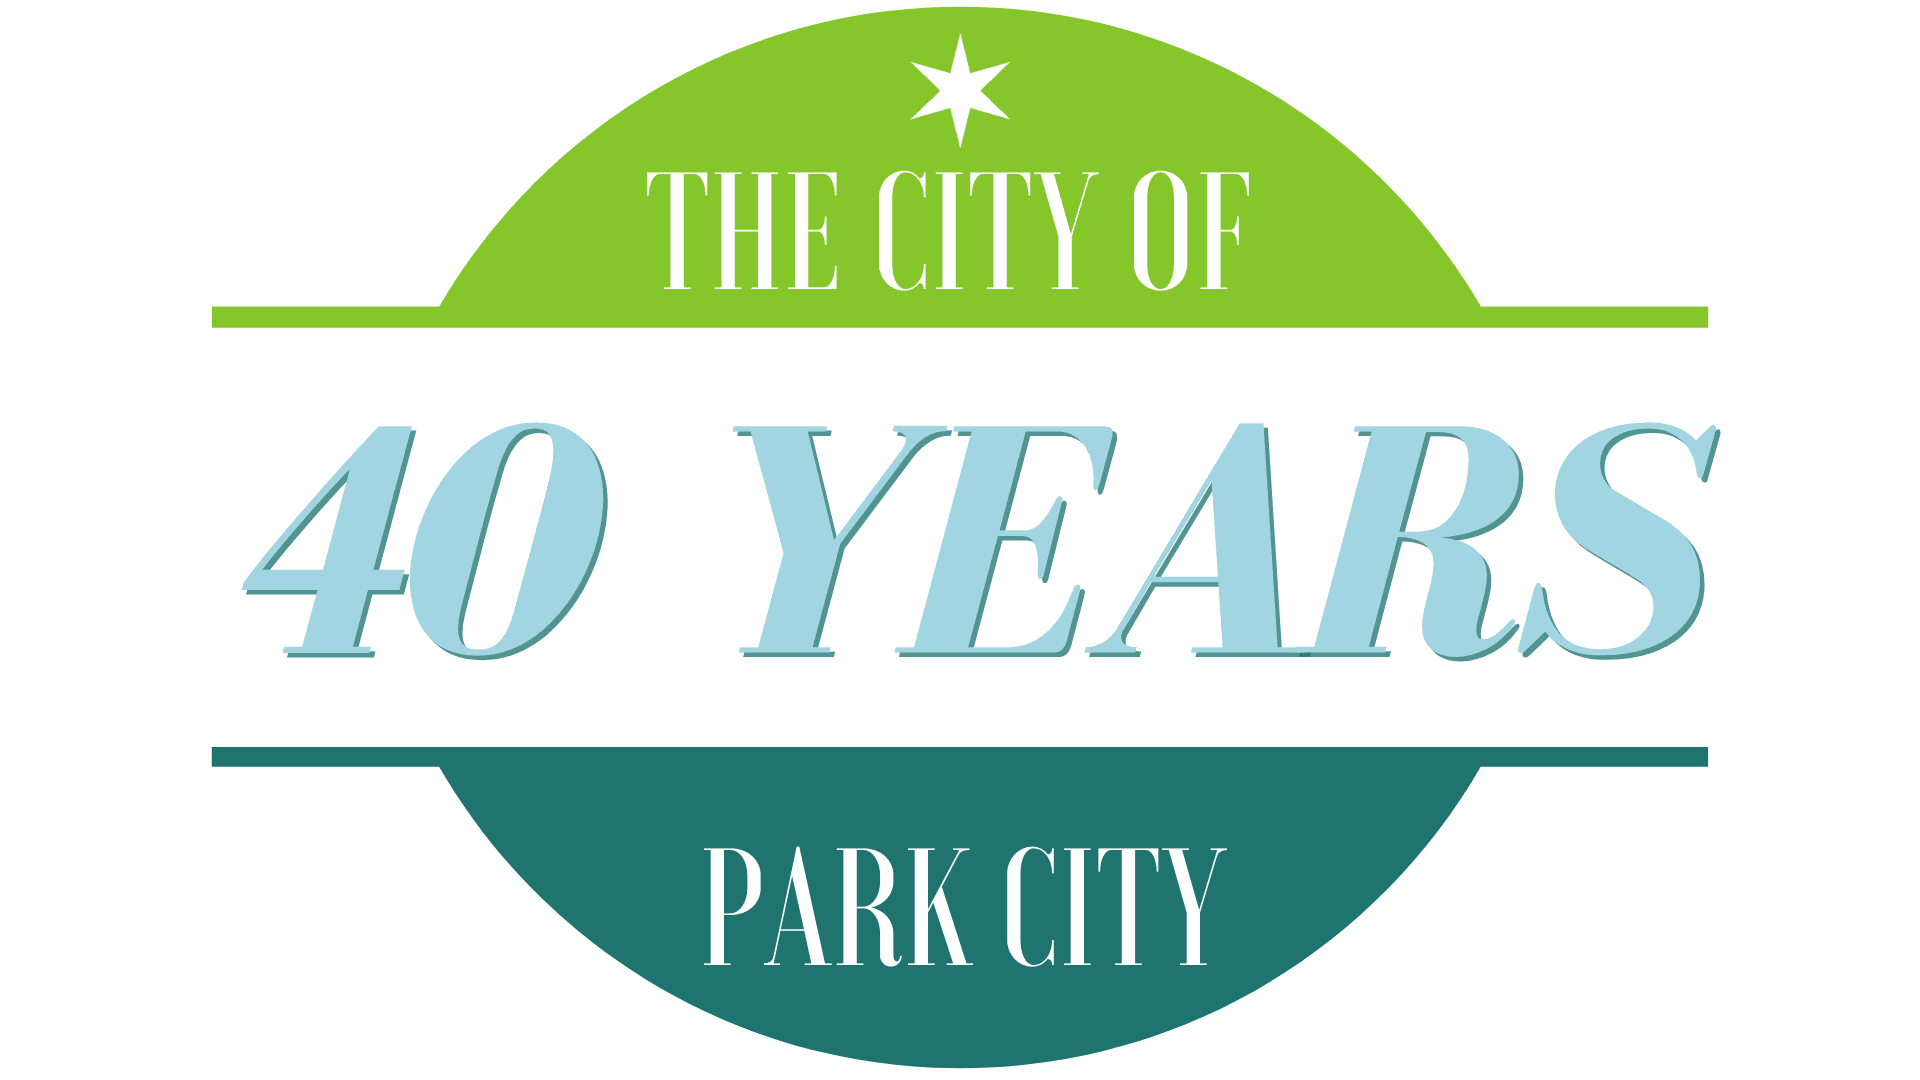 Park City, Kansas - 40 years